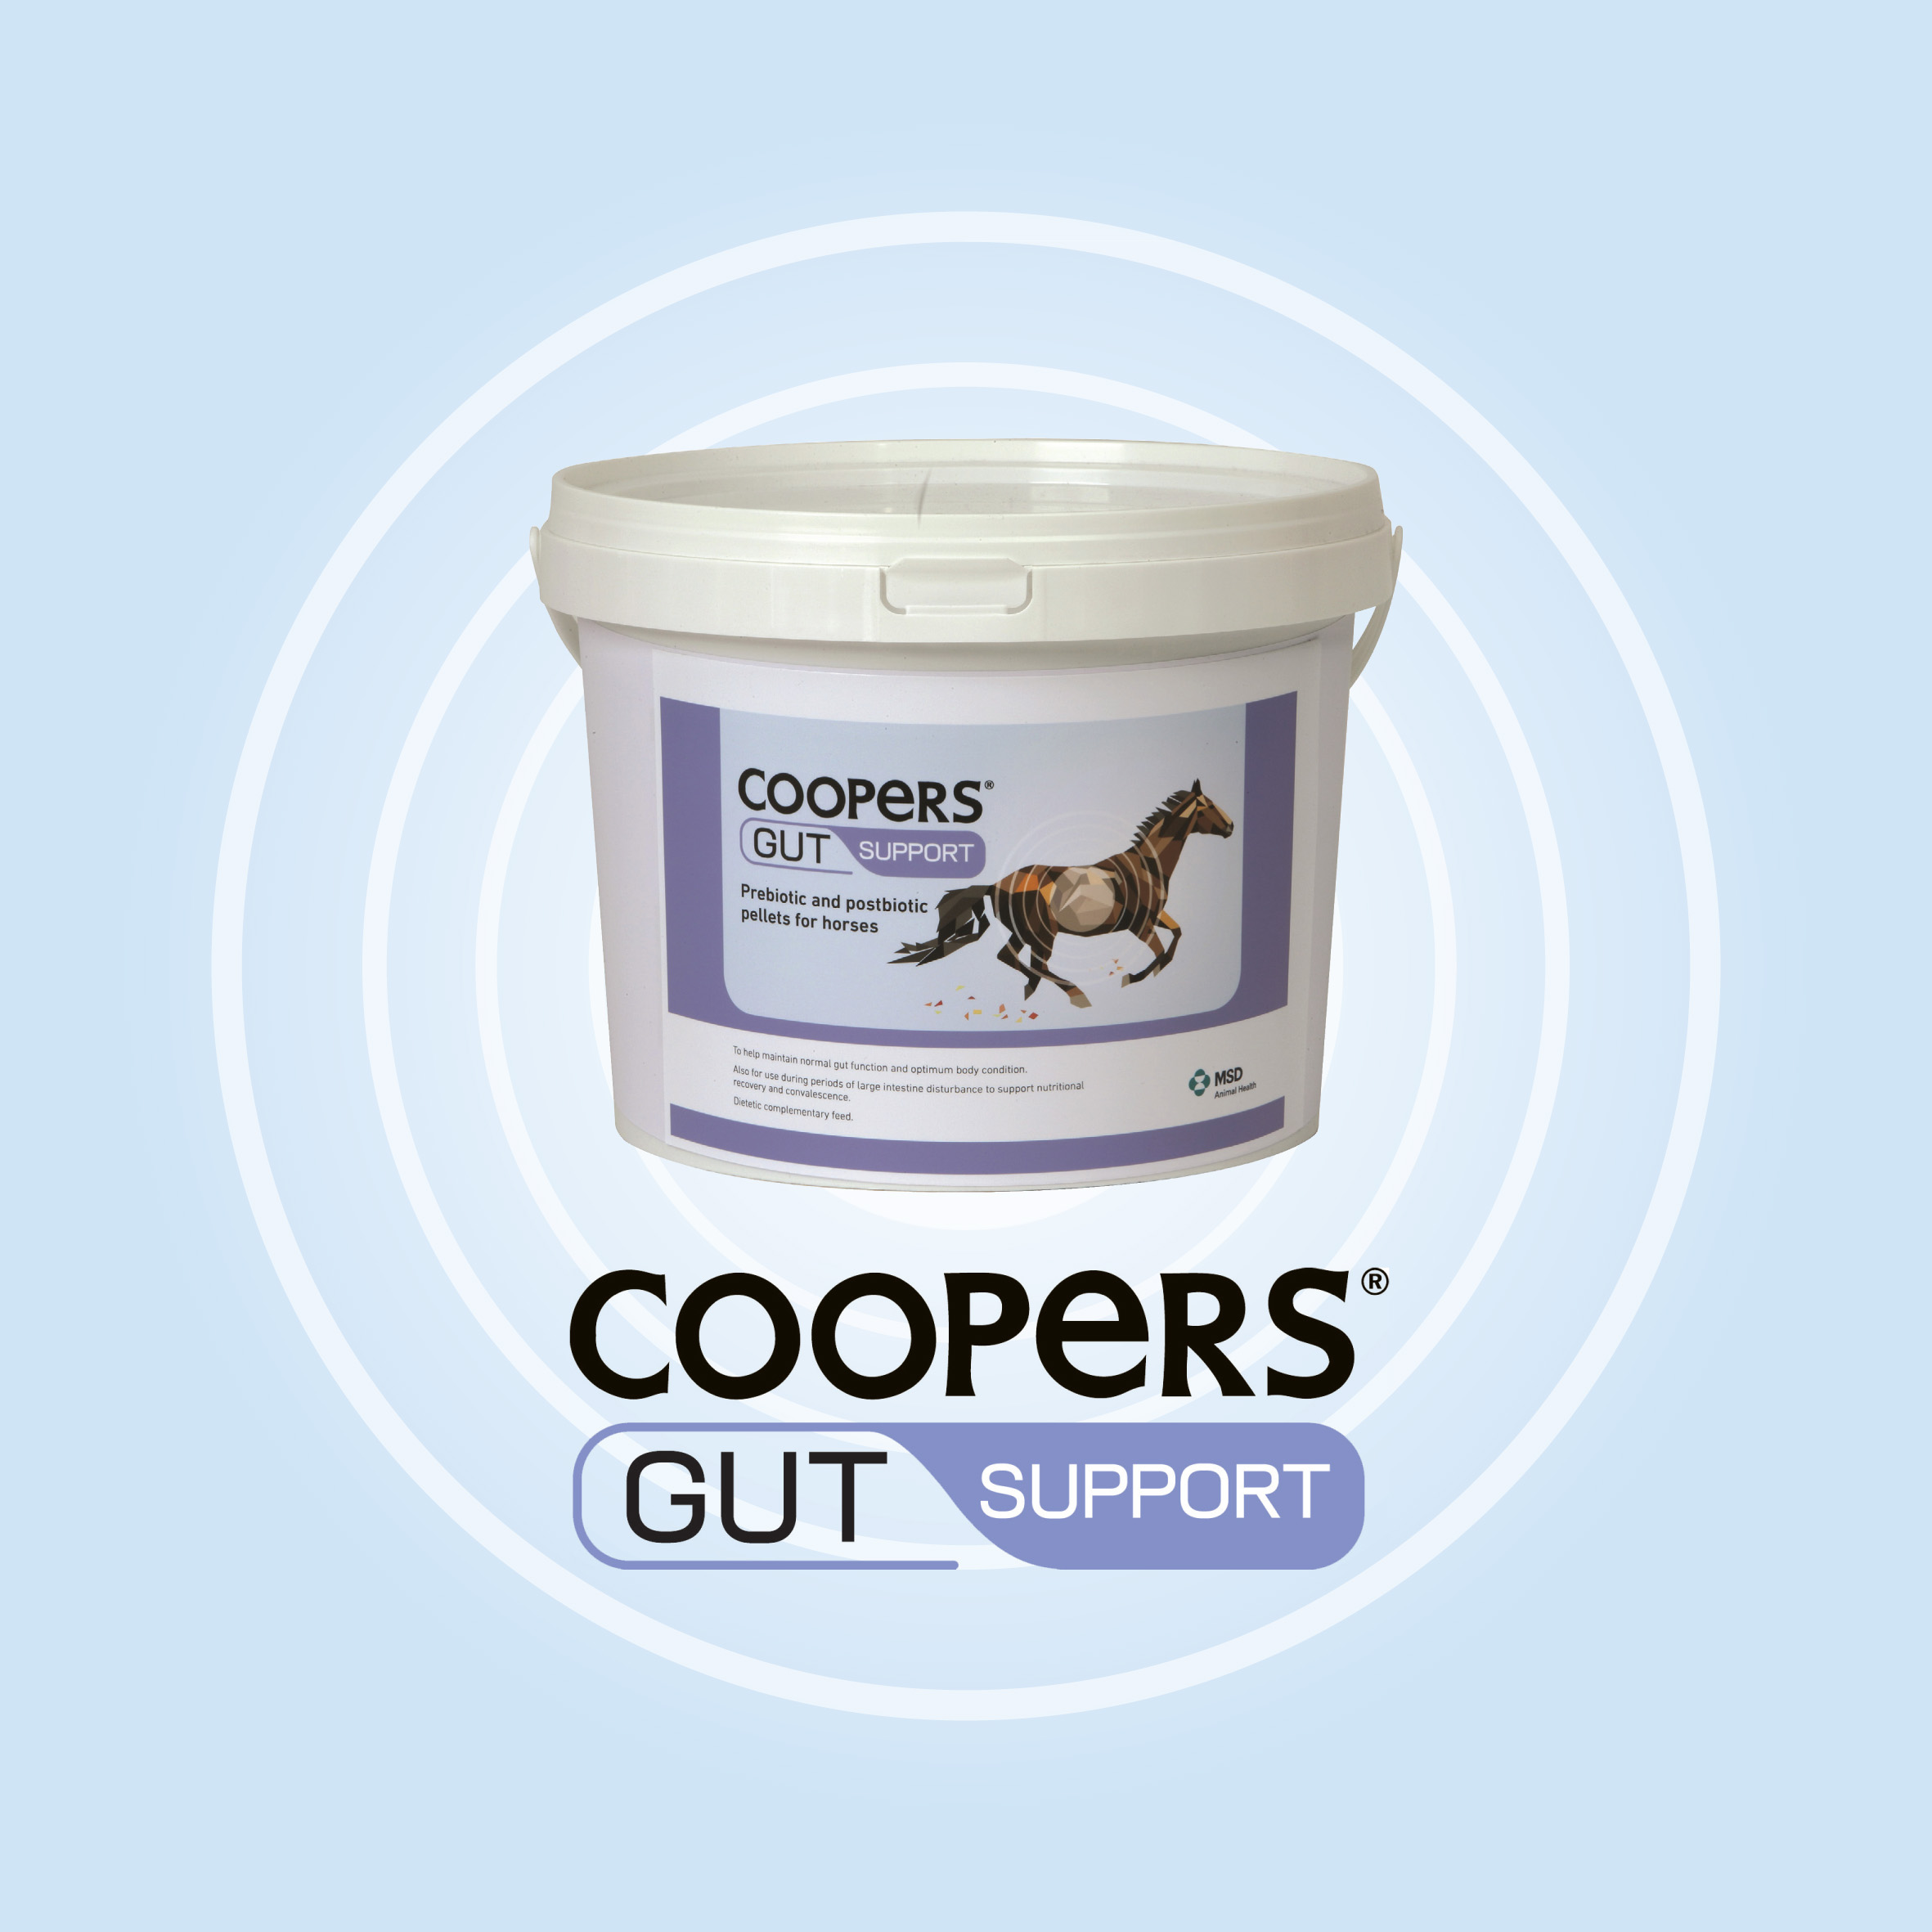 Coopers Gut support